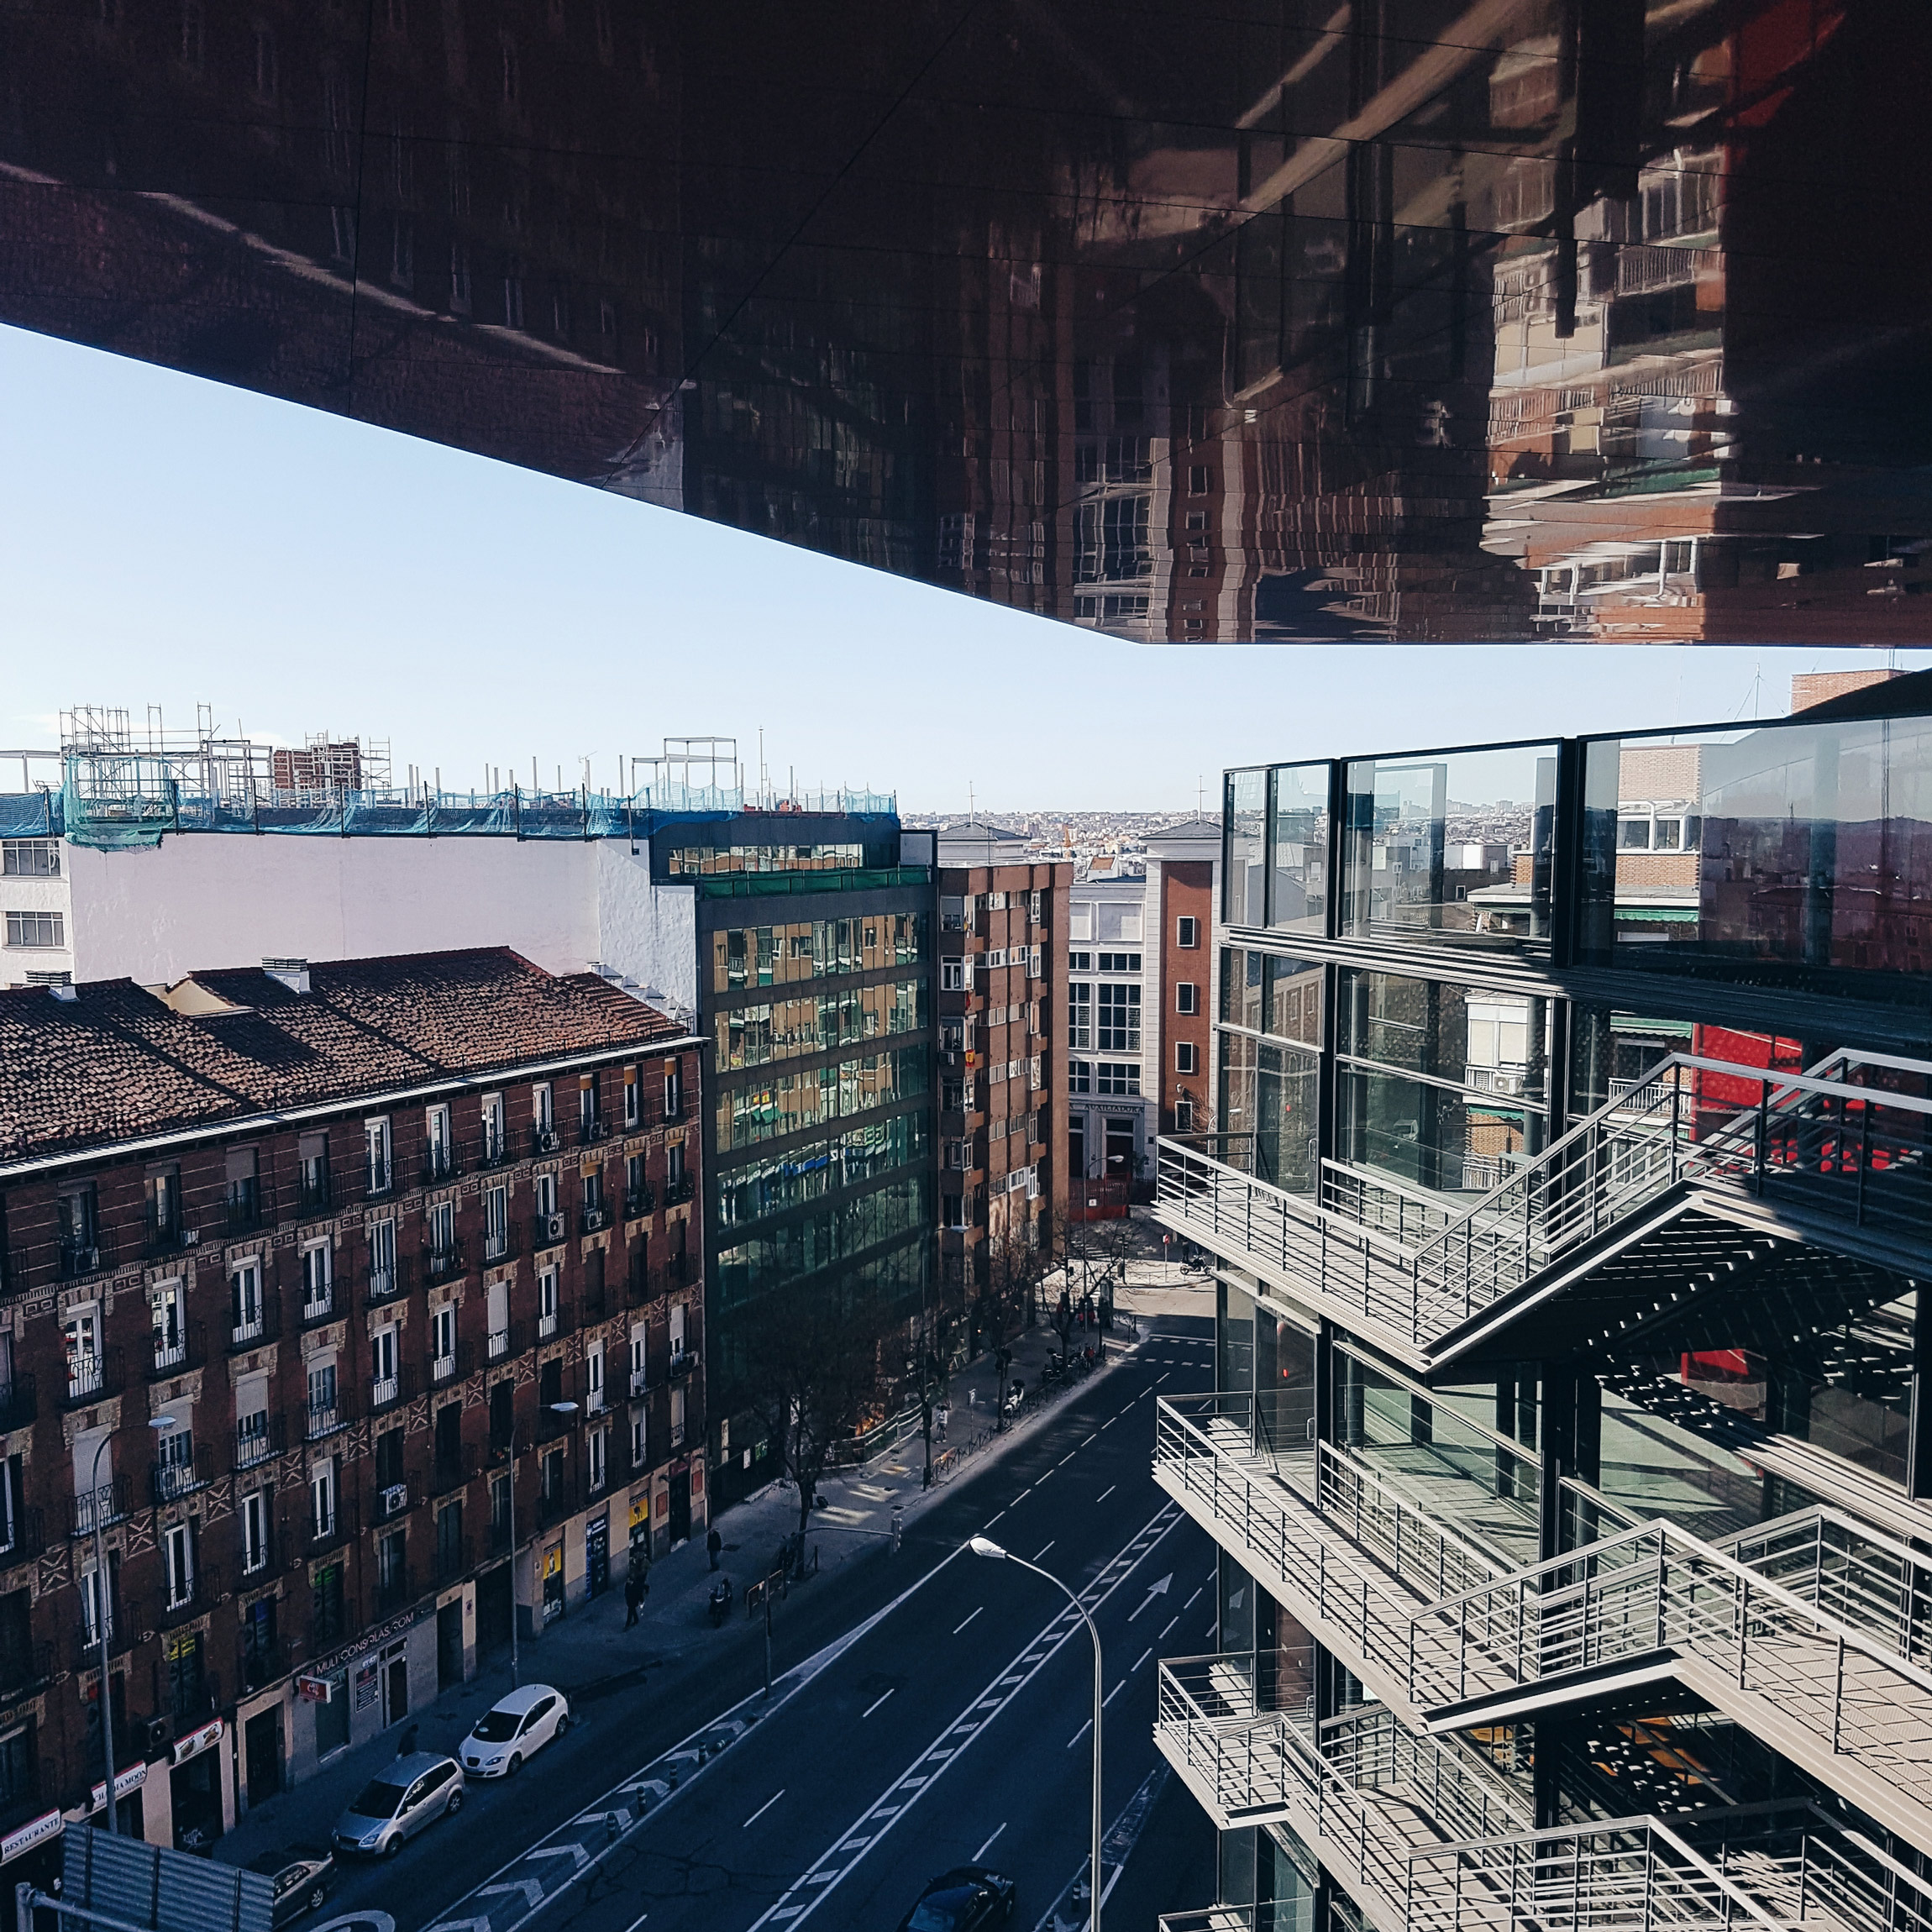 Spain, Madrid, travel, tour, local, concierge, personal assistant, showaround, likealocal